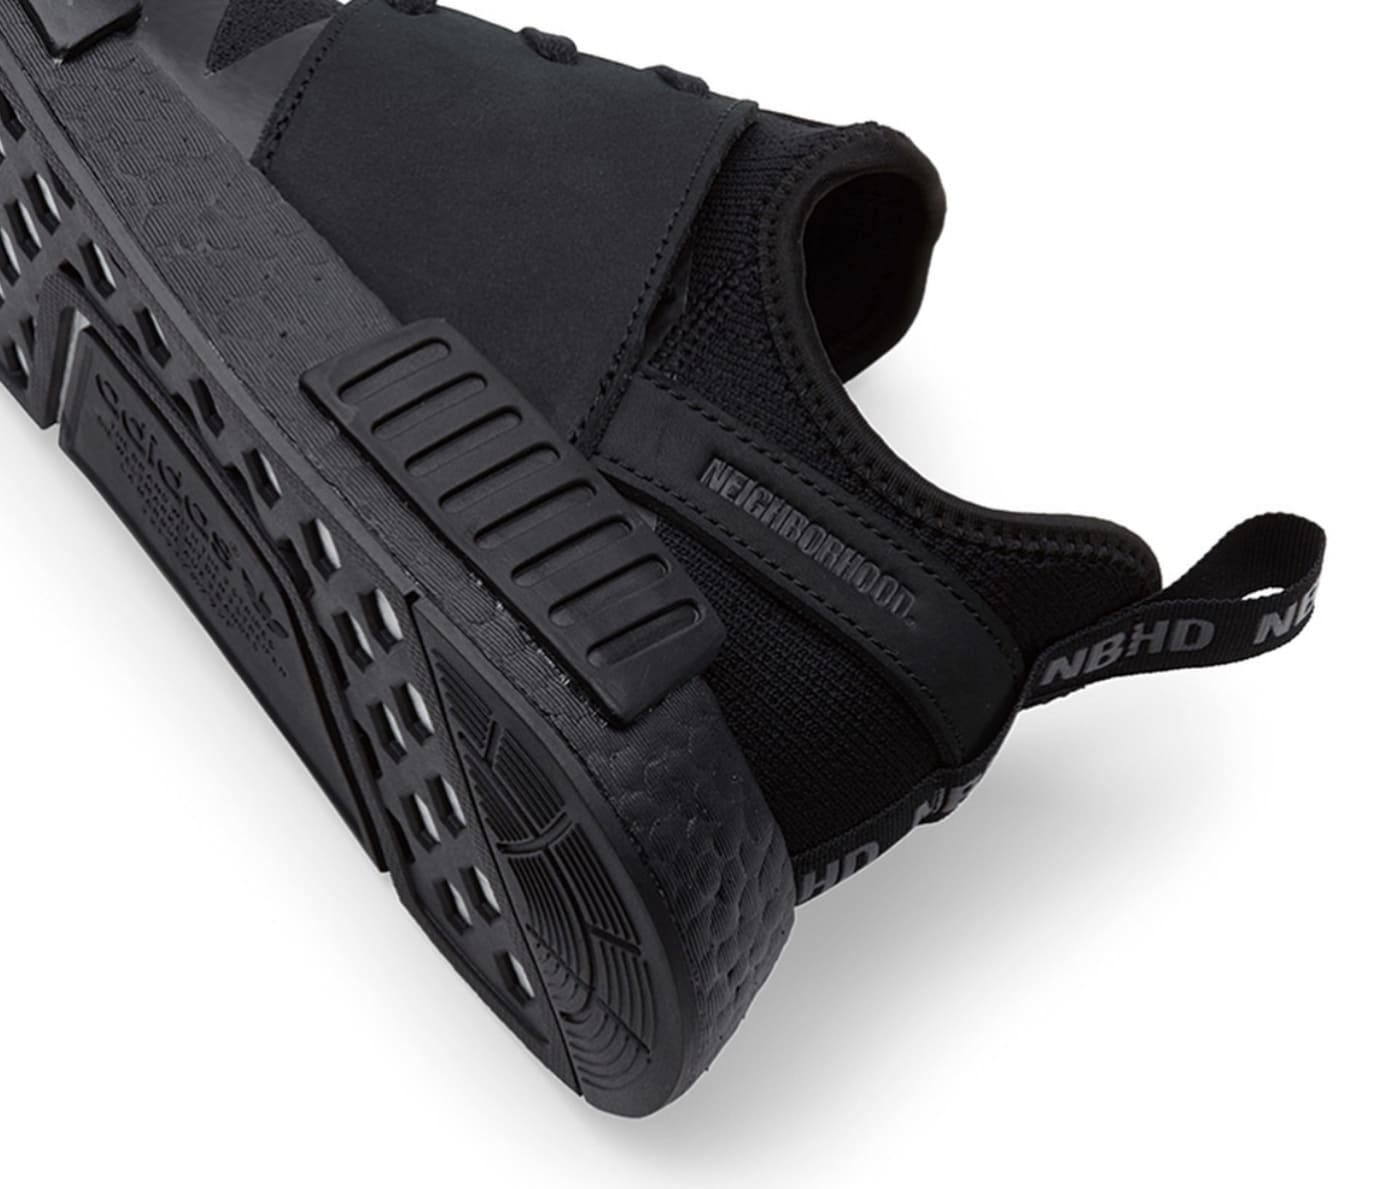 Neighborhood x Adidas NMD_R1 PK 'Triple Black' (Detail 2)